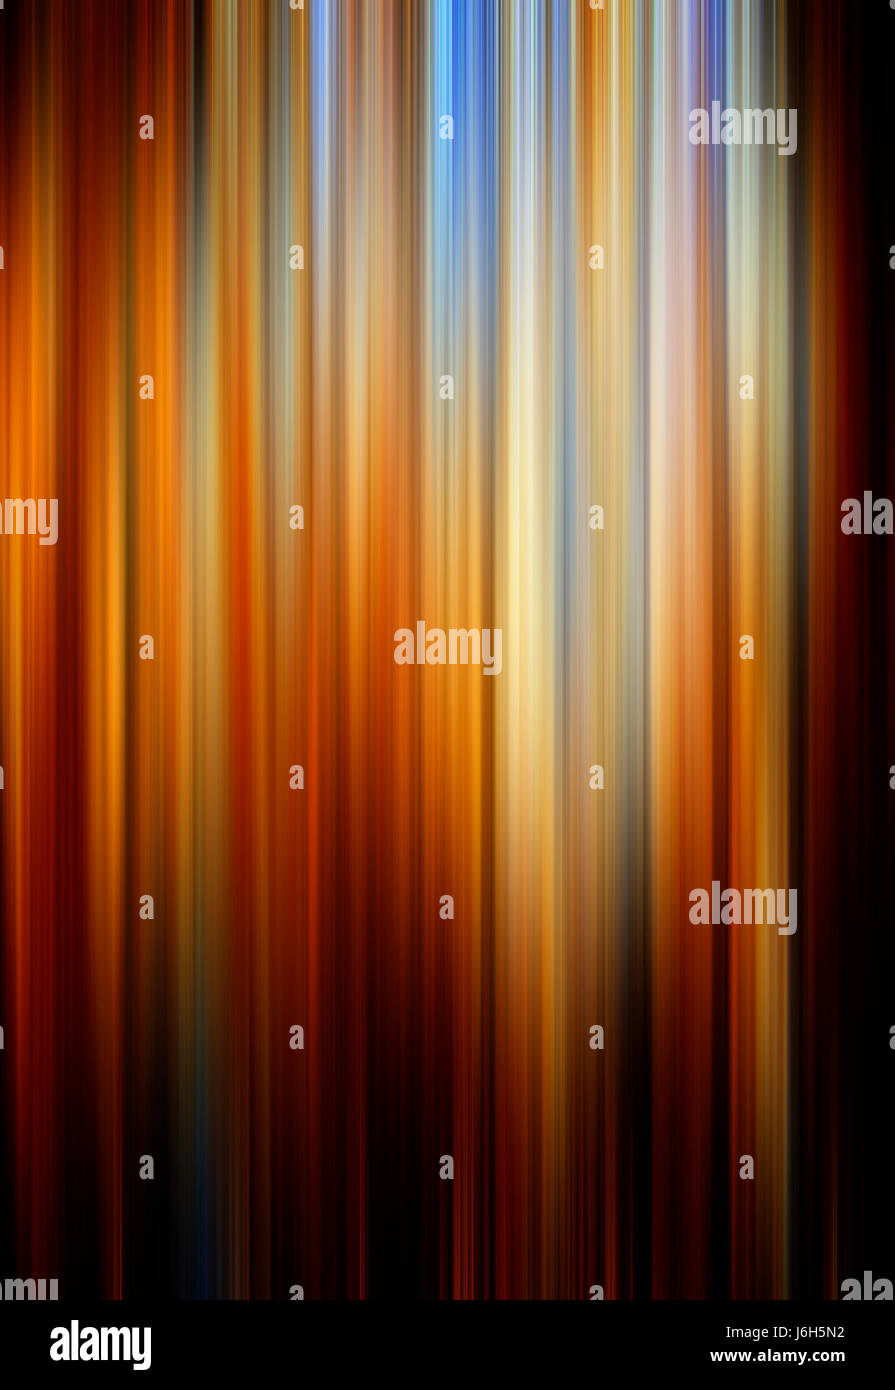 abstract background of colorful vertical lines - Stock Image